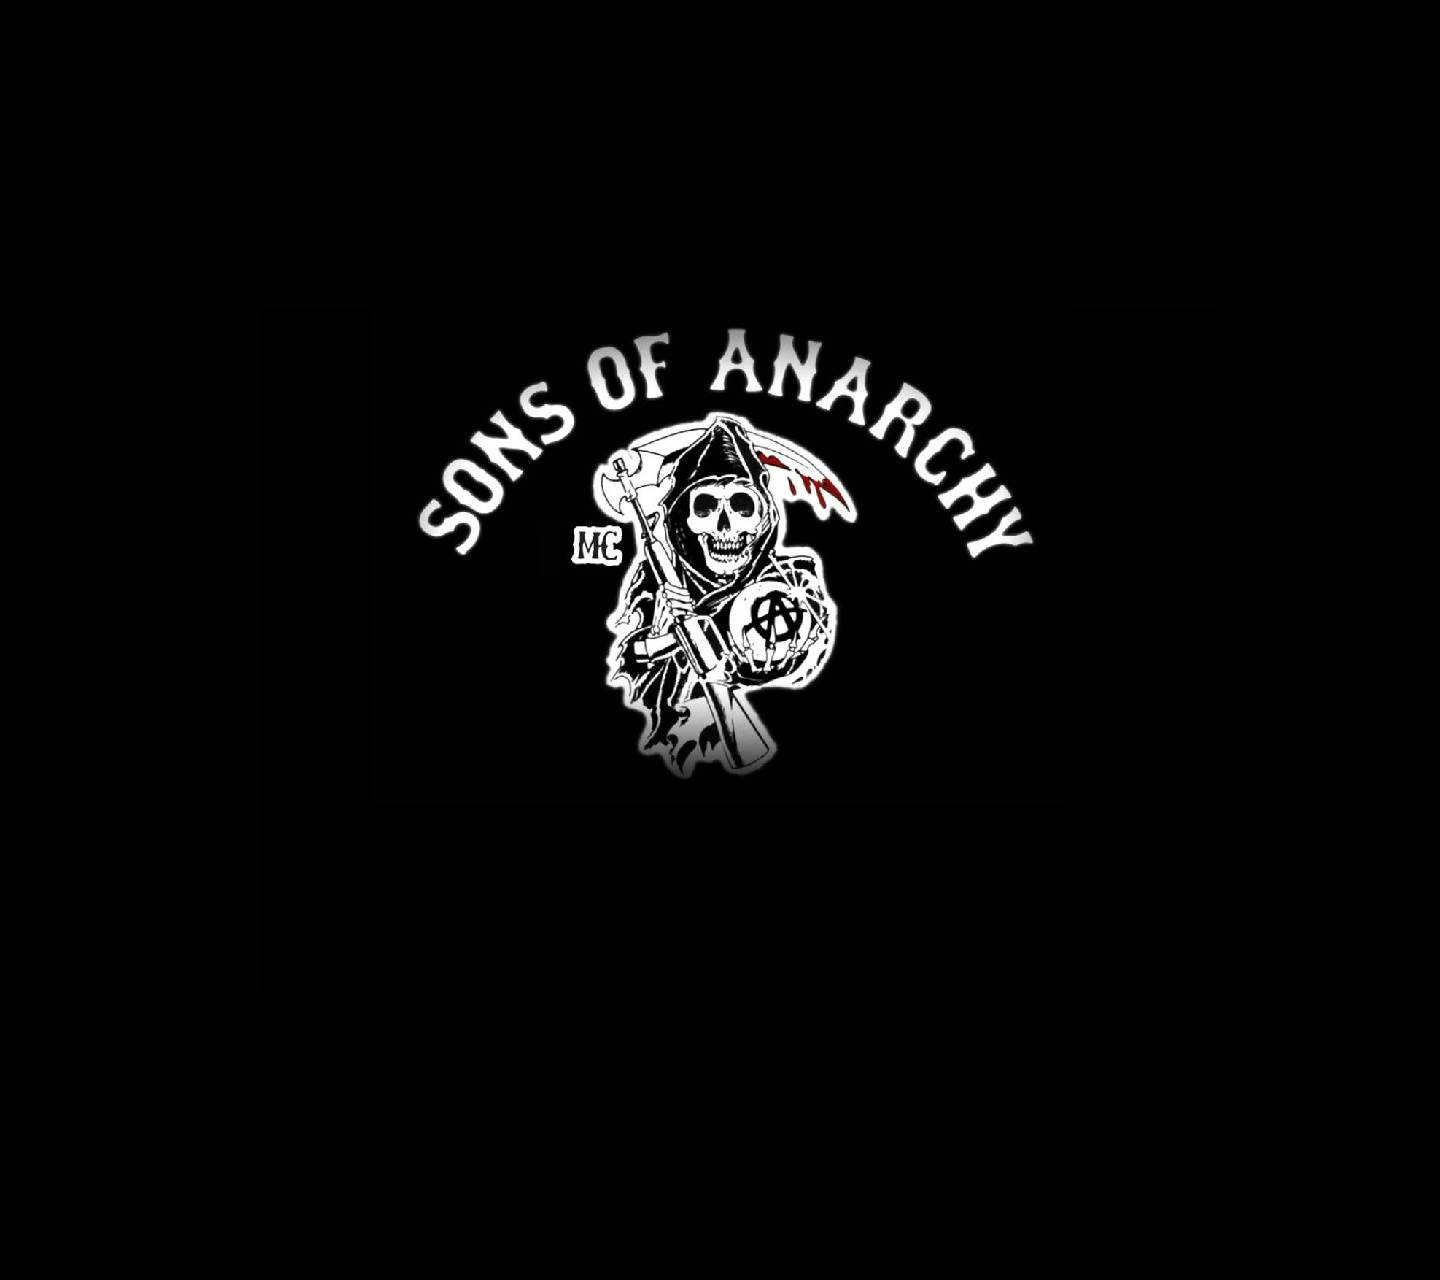 Sons Of Anarchy Wallpaper By Michael12483 54 Free On Zedge